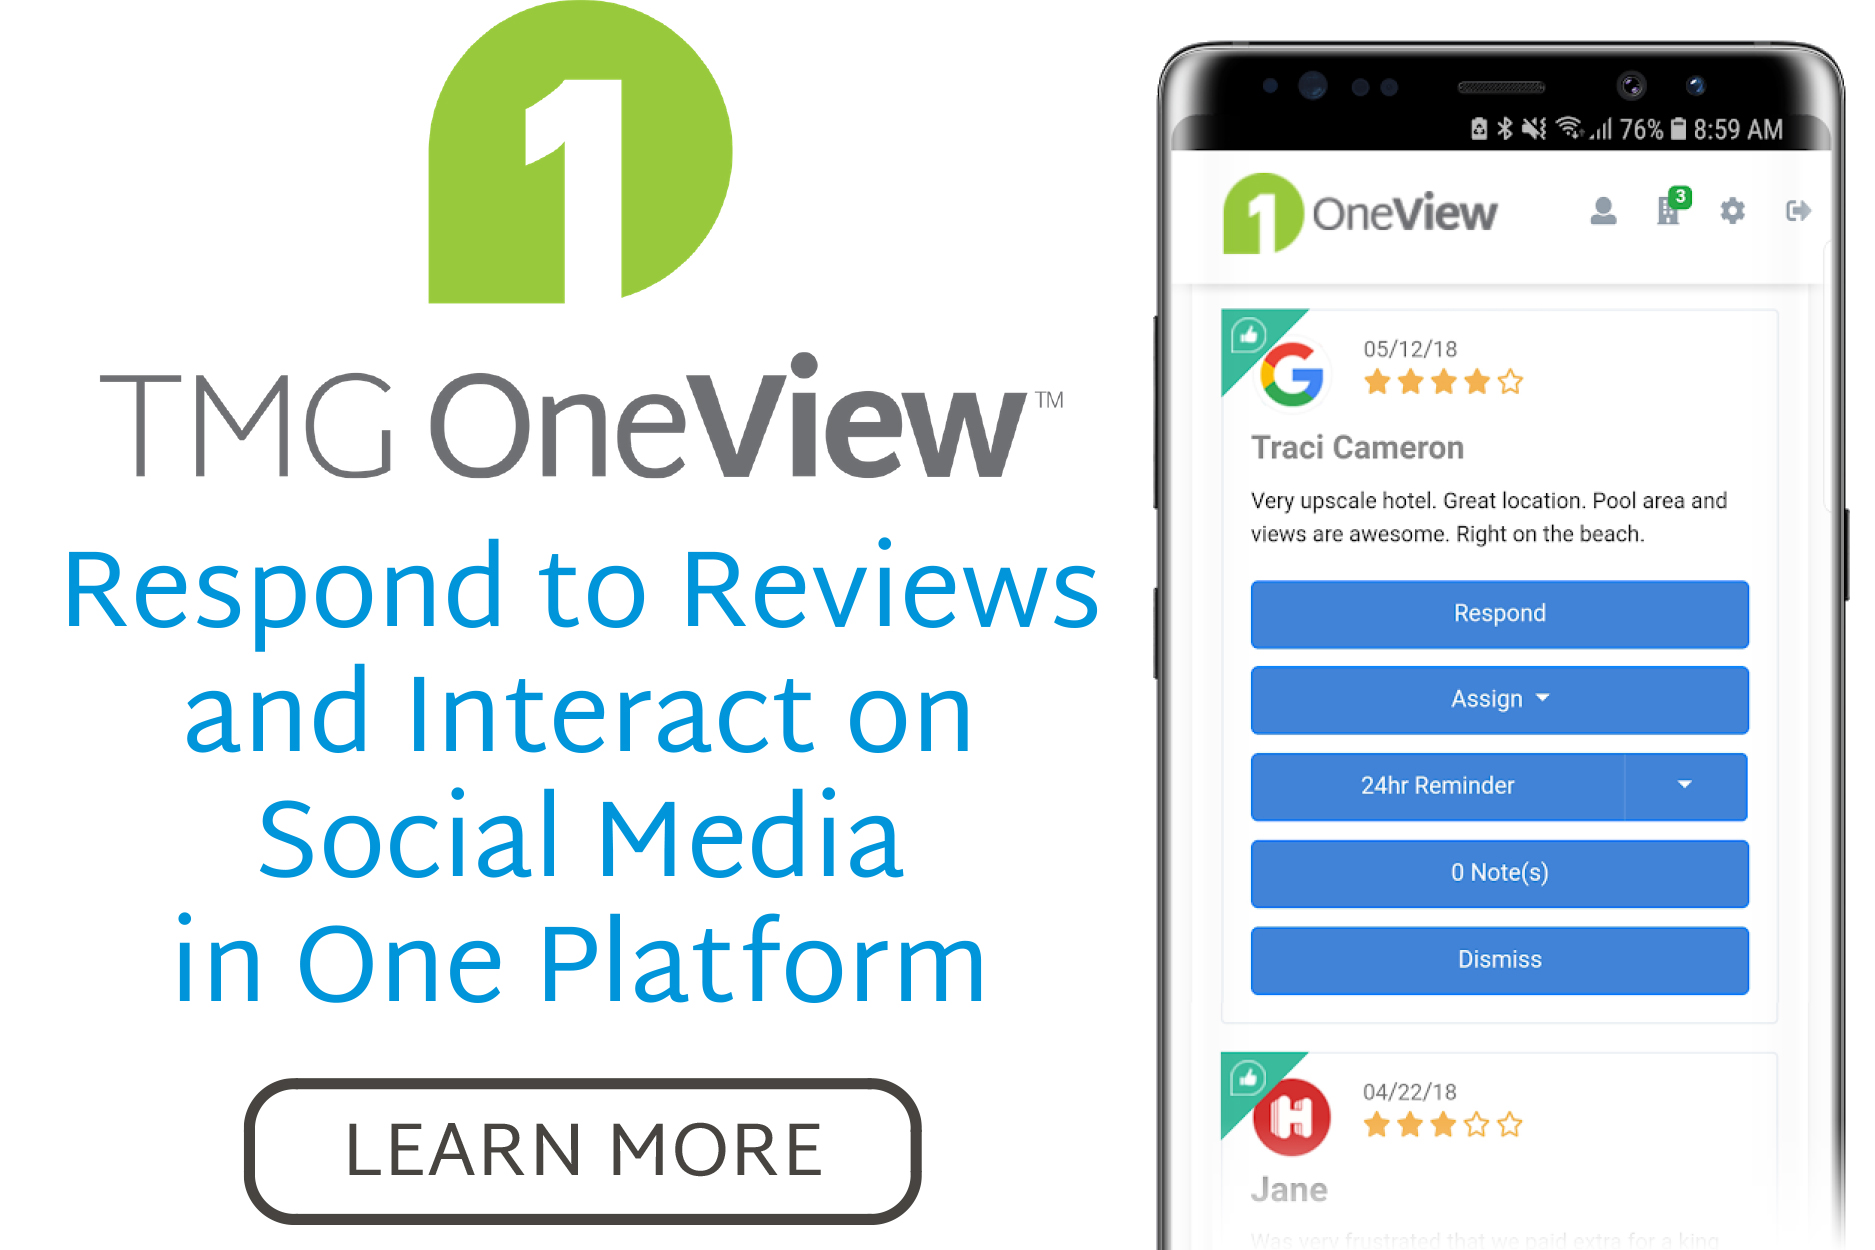 Get TMG OneView, the Ultimate Guest Feedback Management System